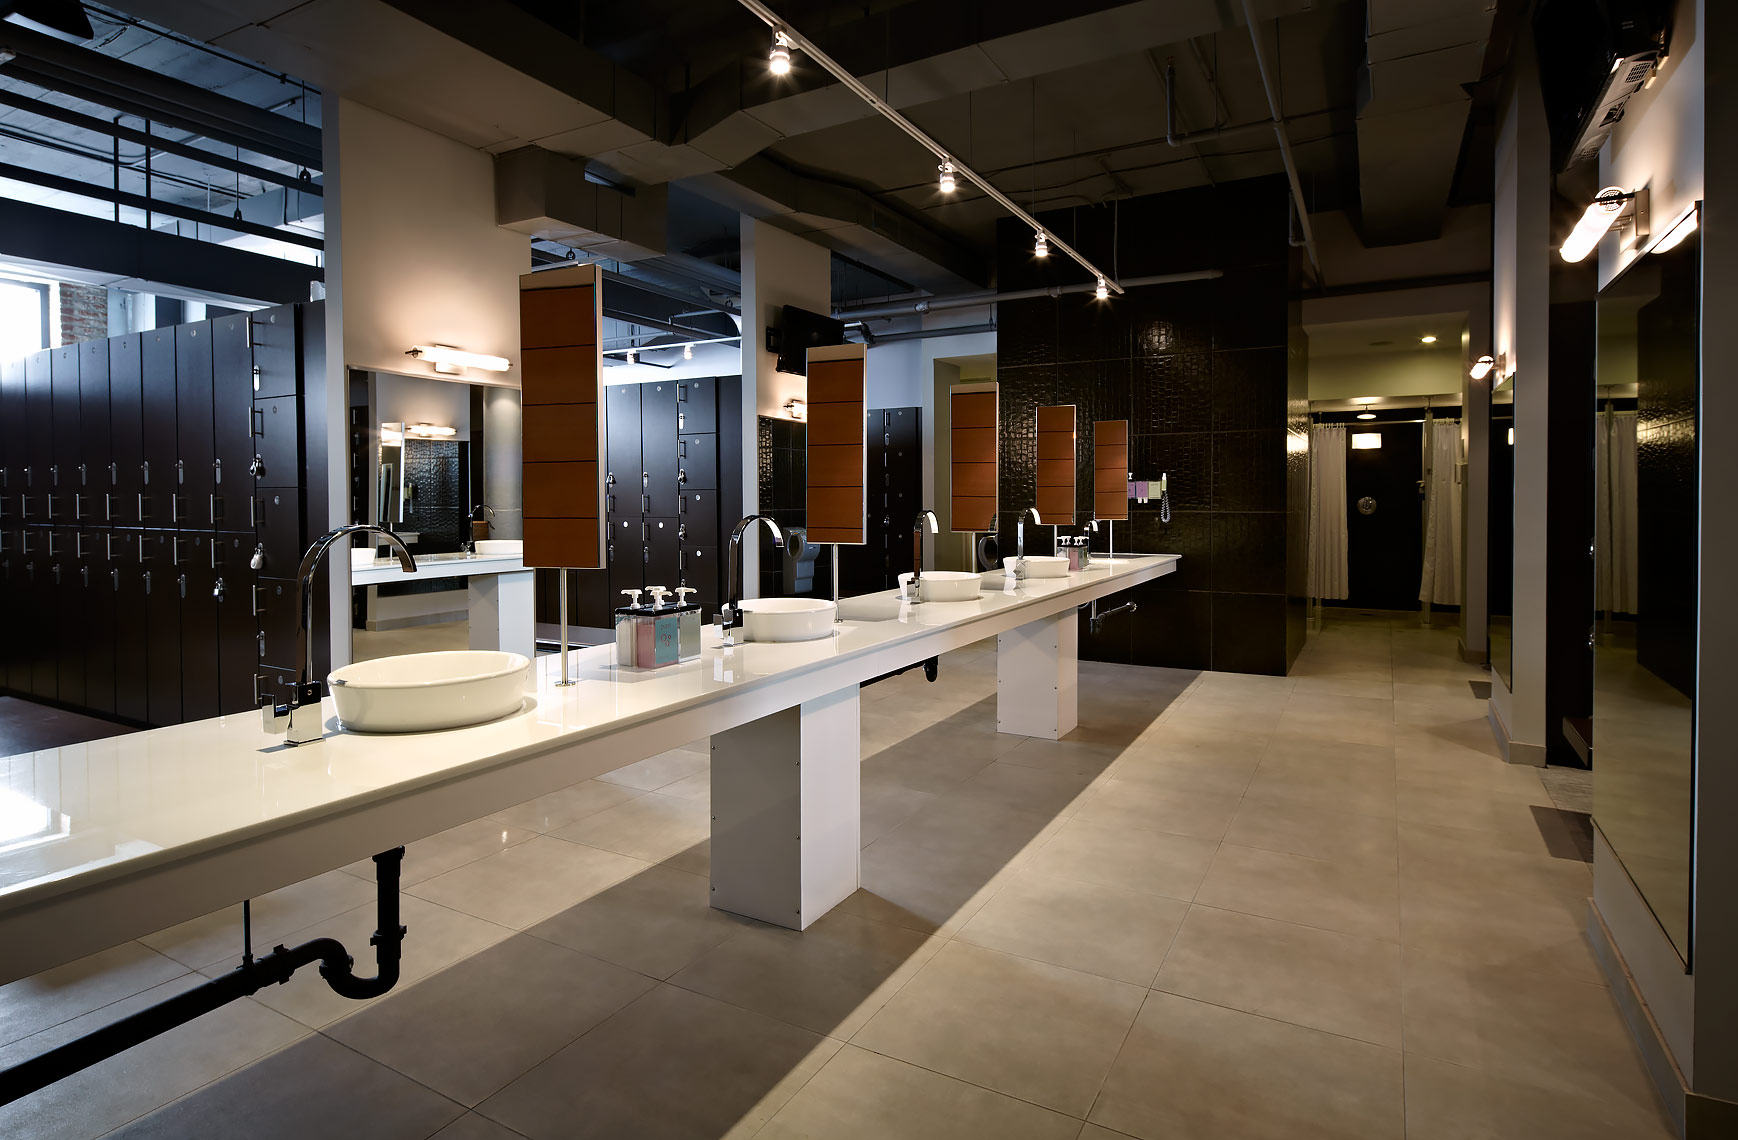 ARCHITECTURE-Retail18-VIDA-U-St-Bathroom